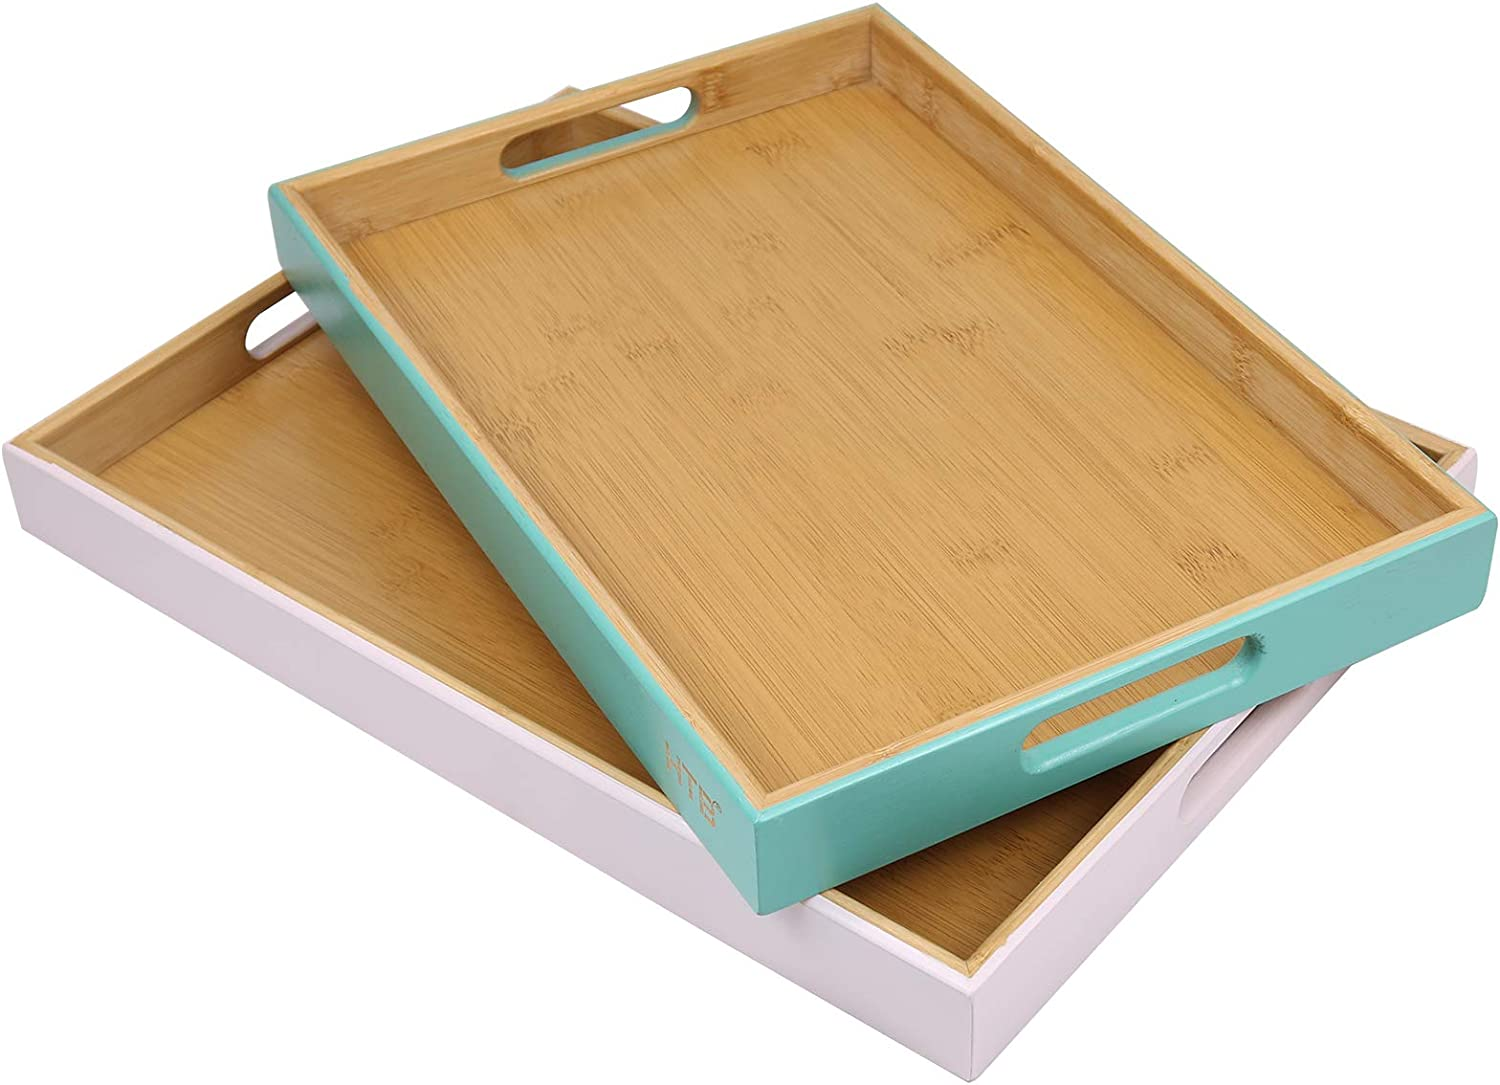 2PCS Rectangular Serving Tray with Handle by HTB, Bamboo Food Trays for Breakfast Party Wedding Coffee Table Ottoman Decor